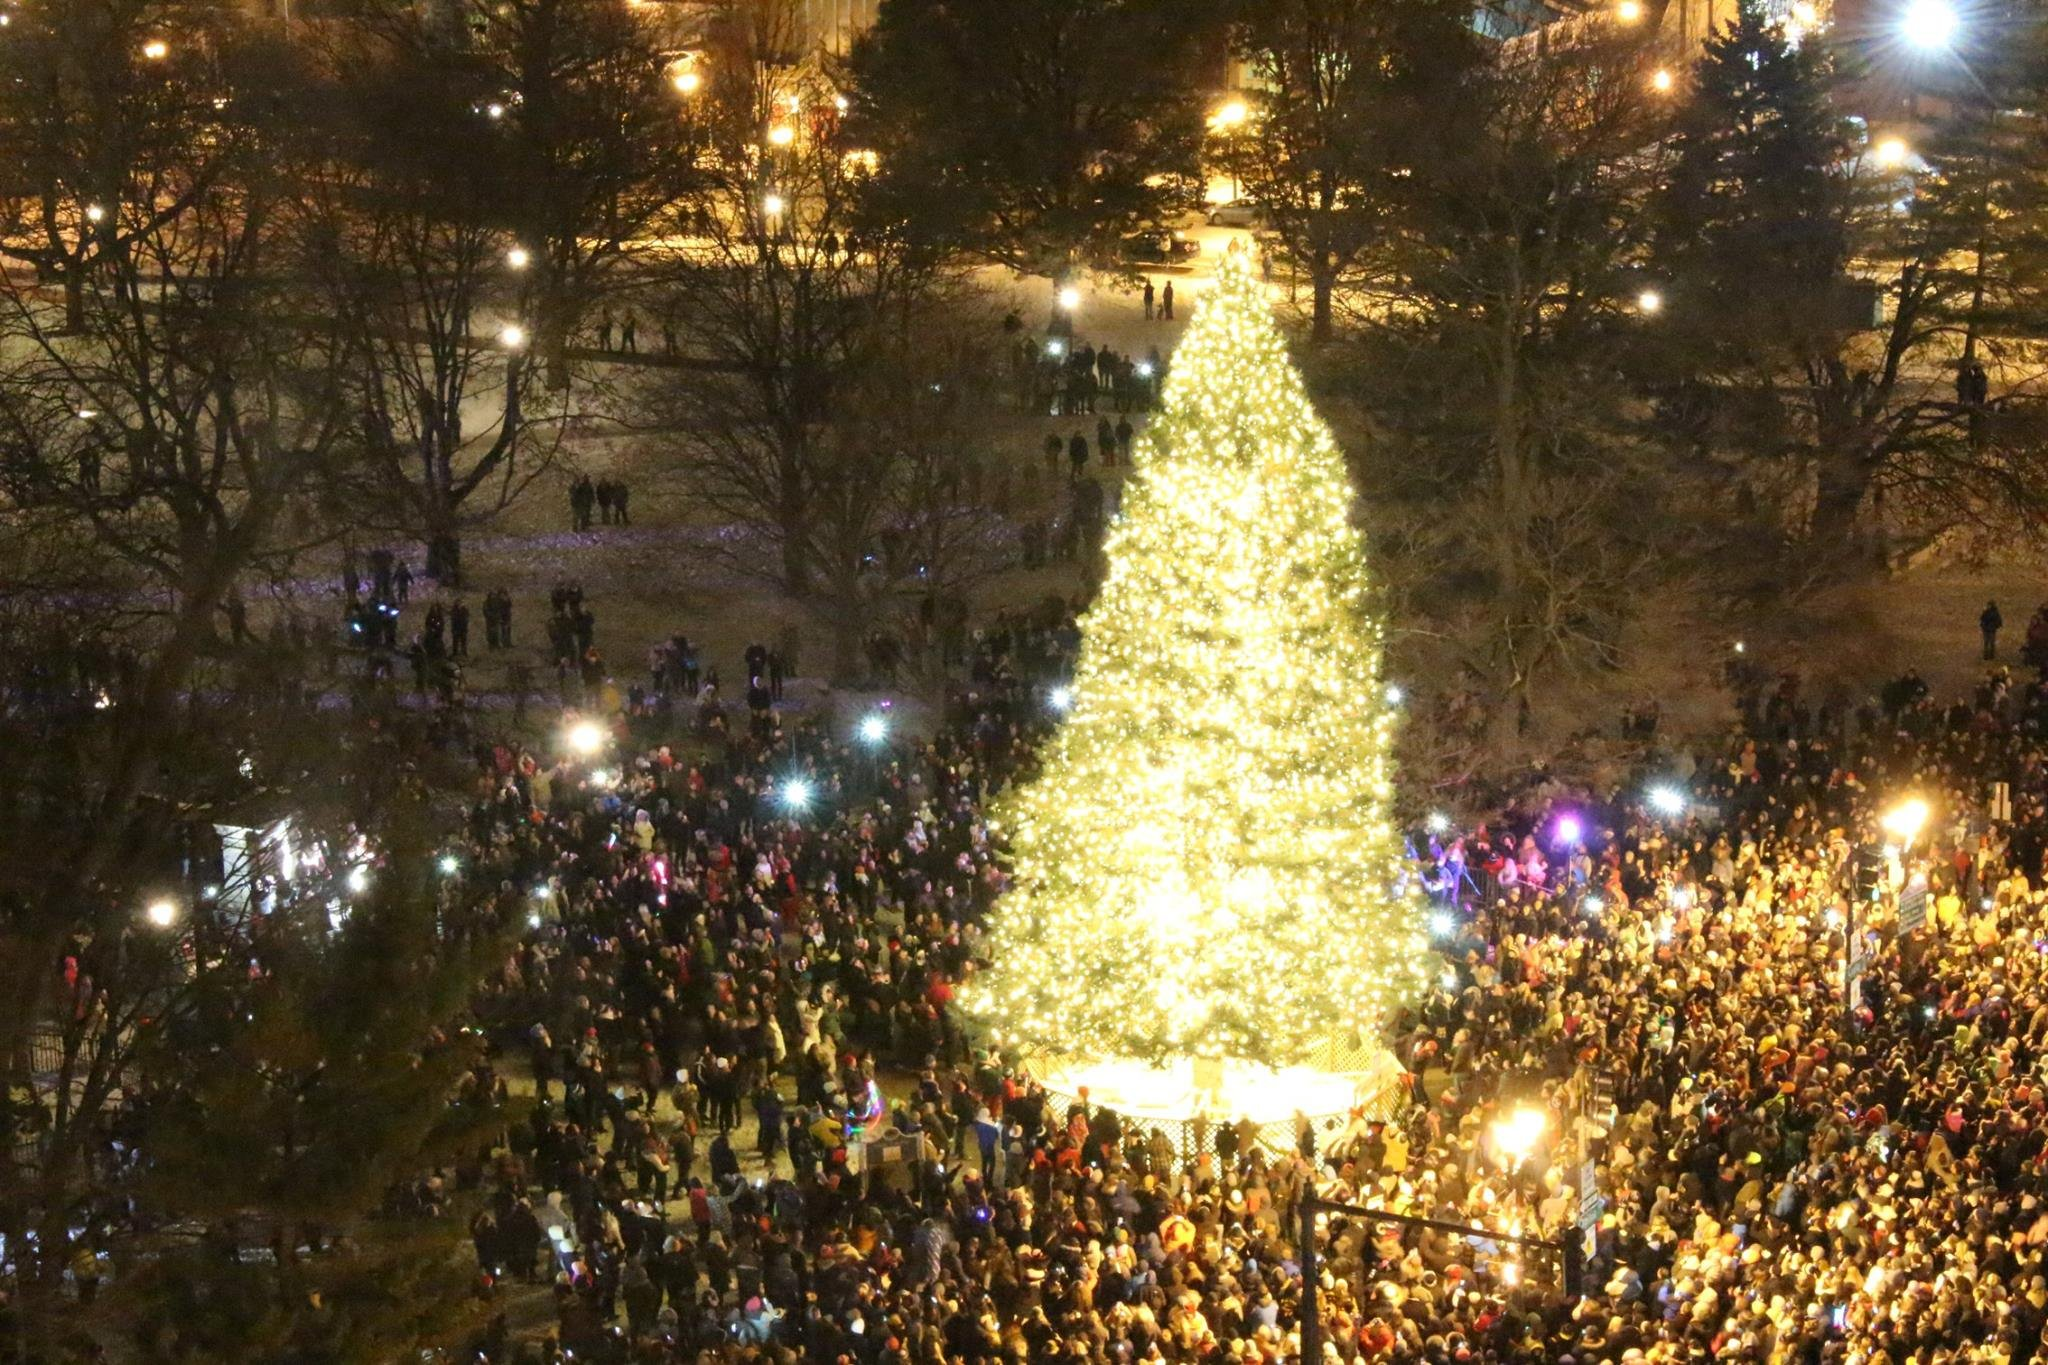 A photo of the state's Christmas tree in 2014. (Source: State of Michigan)